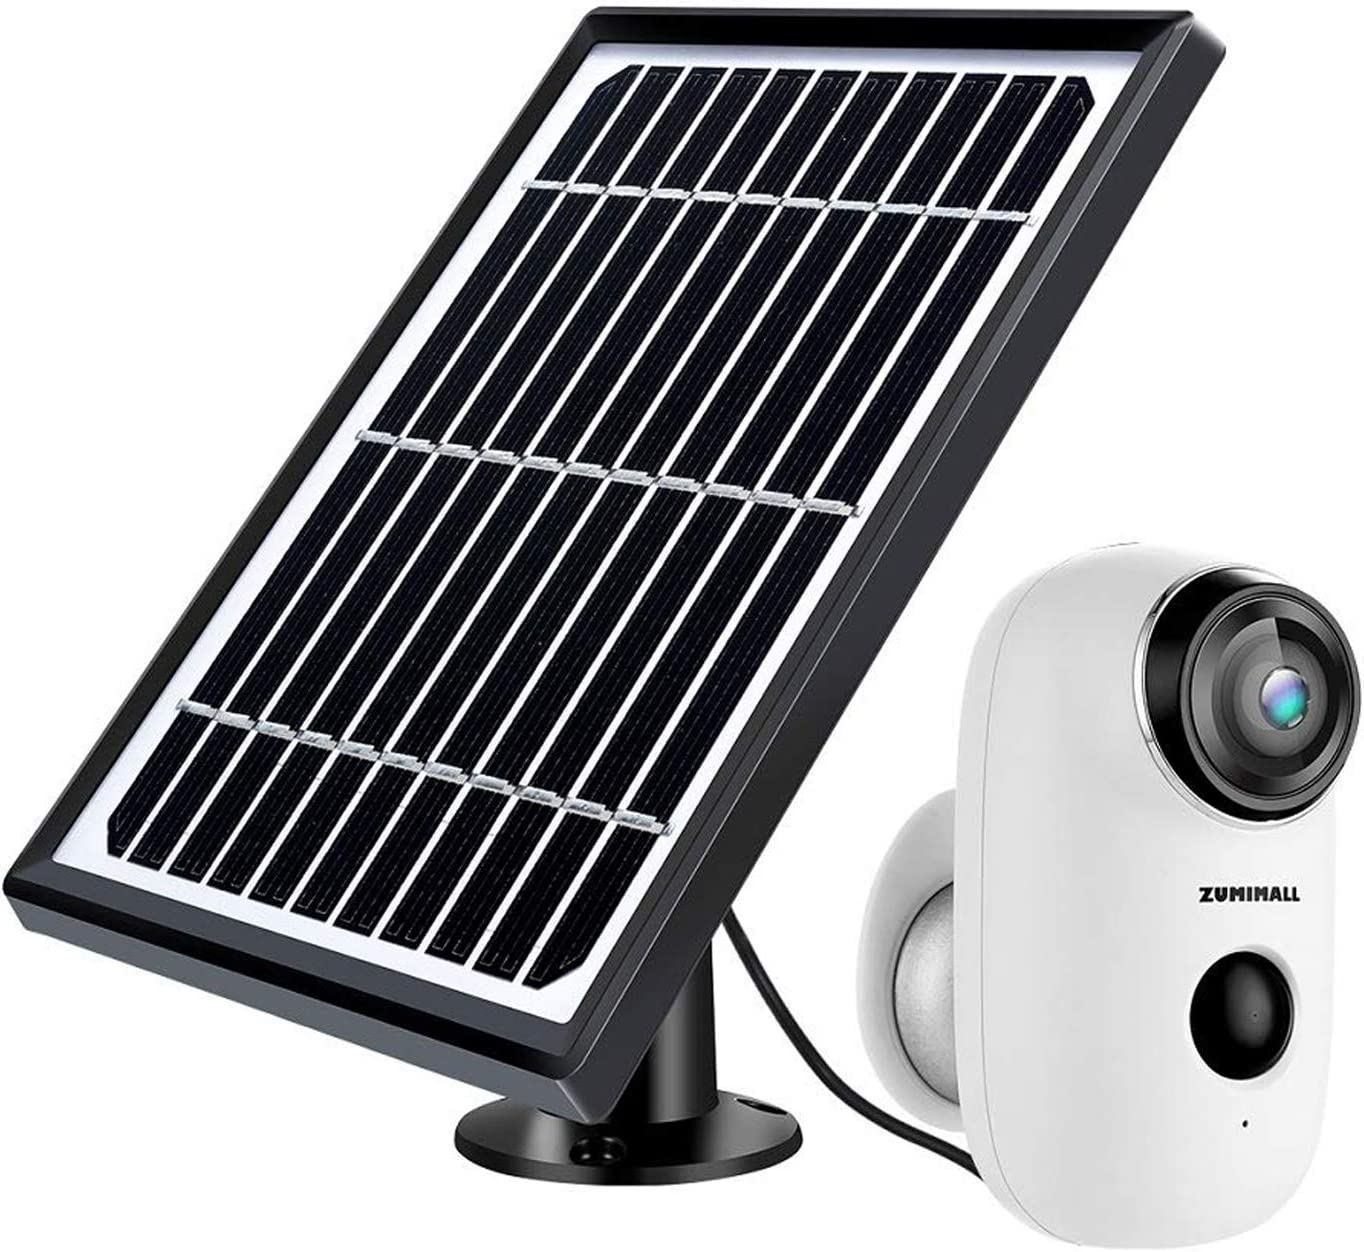 Security Camera Outdoor Wireless WiFi, ZUMIMALL Solar Powered Surveillance Camera with Rechargeable Battery, 1080P Night Vision, Motion Detection, 2-Way Audio, IP65 Waterproof, Cloud Storage/SD Slot